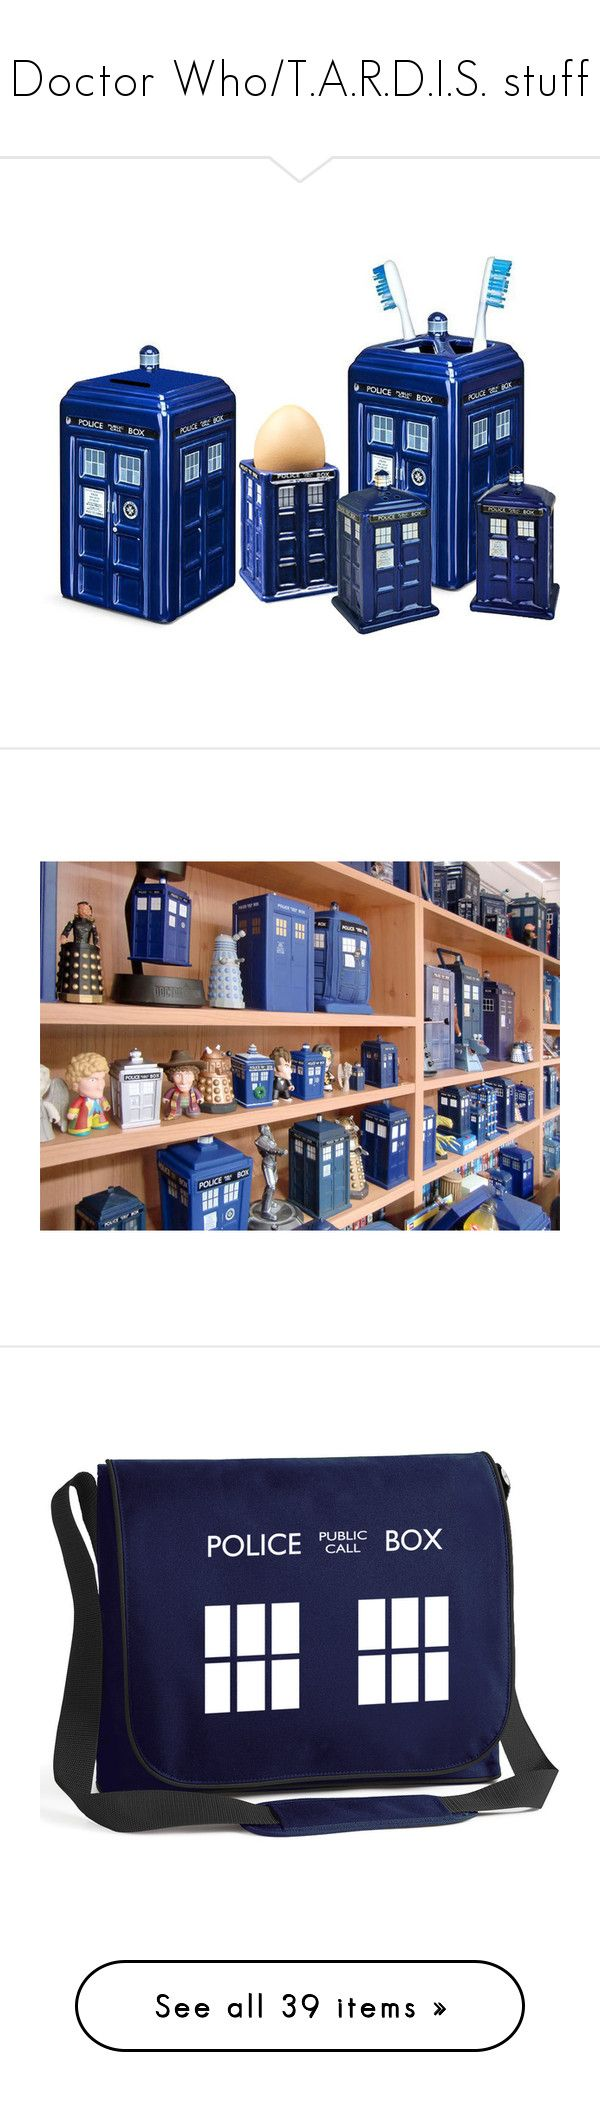 """""""Doctor Who/T.A.R.D.I.S. stuff"""" by potato-cloud on Polyvore featuring bags, messenger bags, doctor who, accessories, pattern bag, distressed messenger bag, laptop bags, blue messenger bag, padded bag and home"""